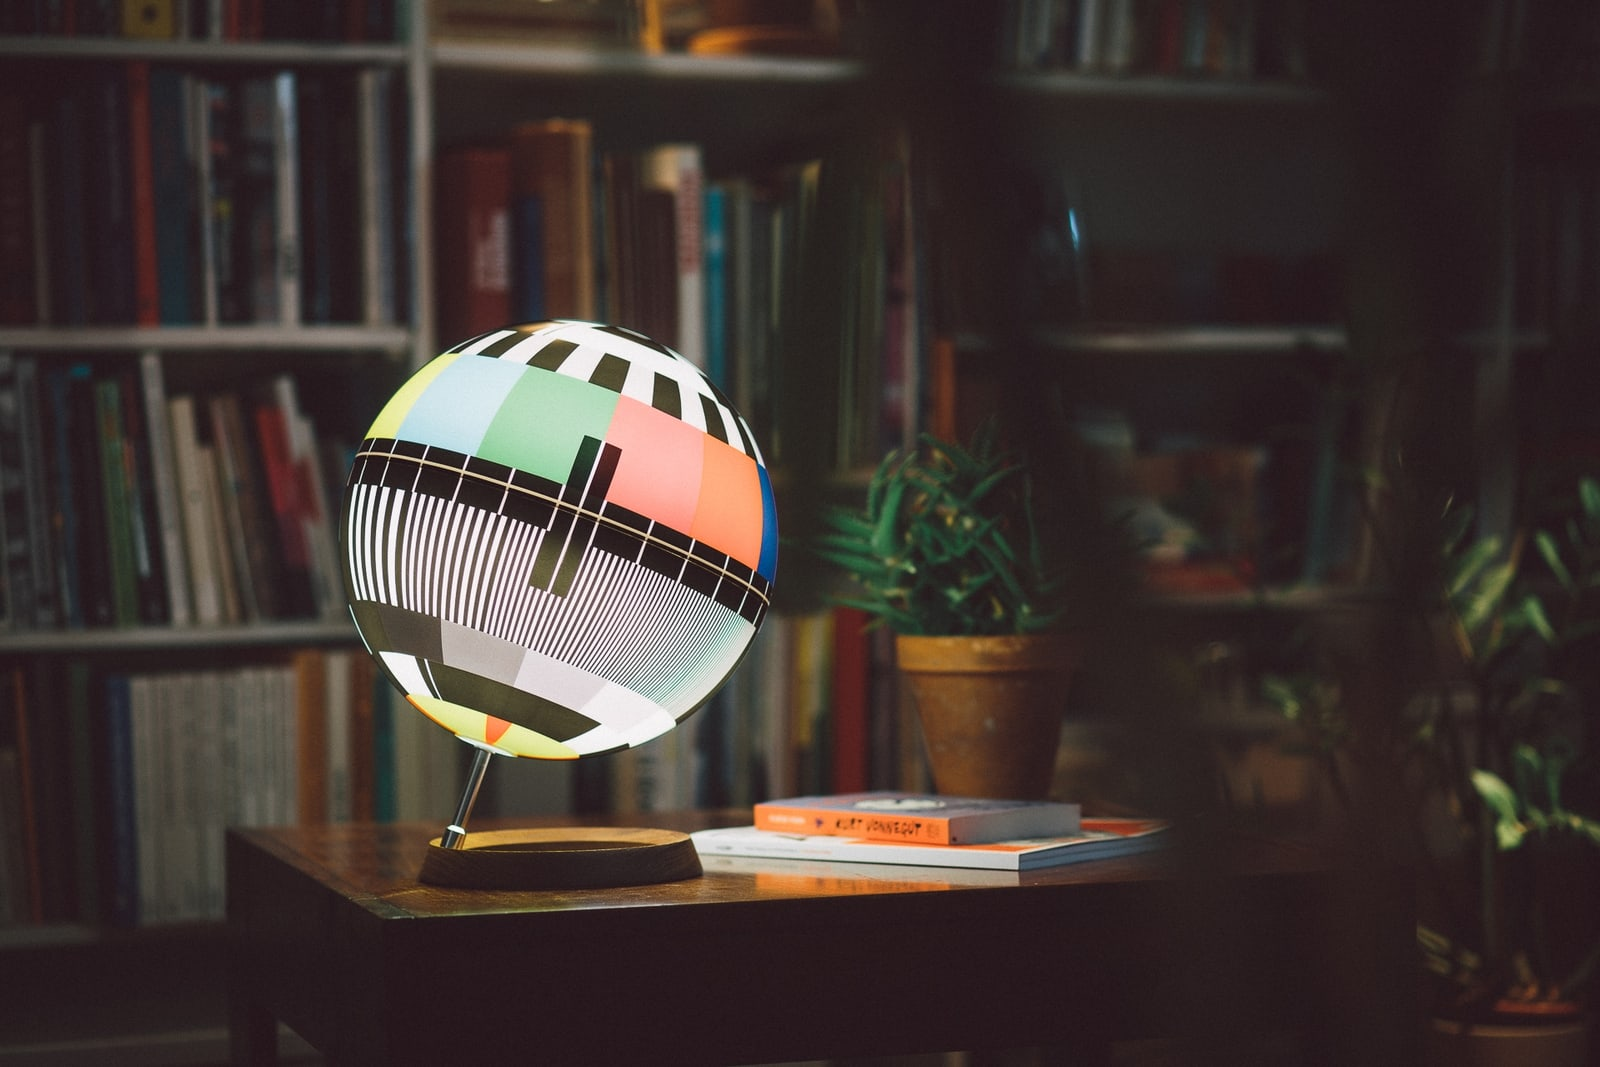 A design lamp capturing a unique era of TV history! - Photo by Bence Szemerey